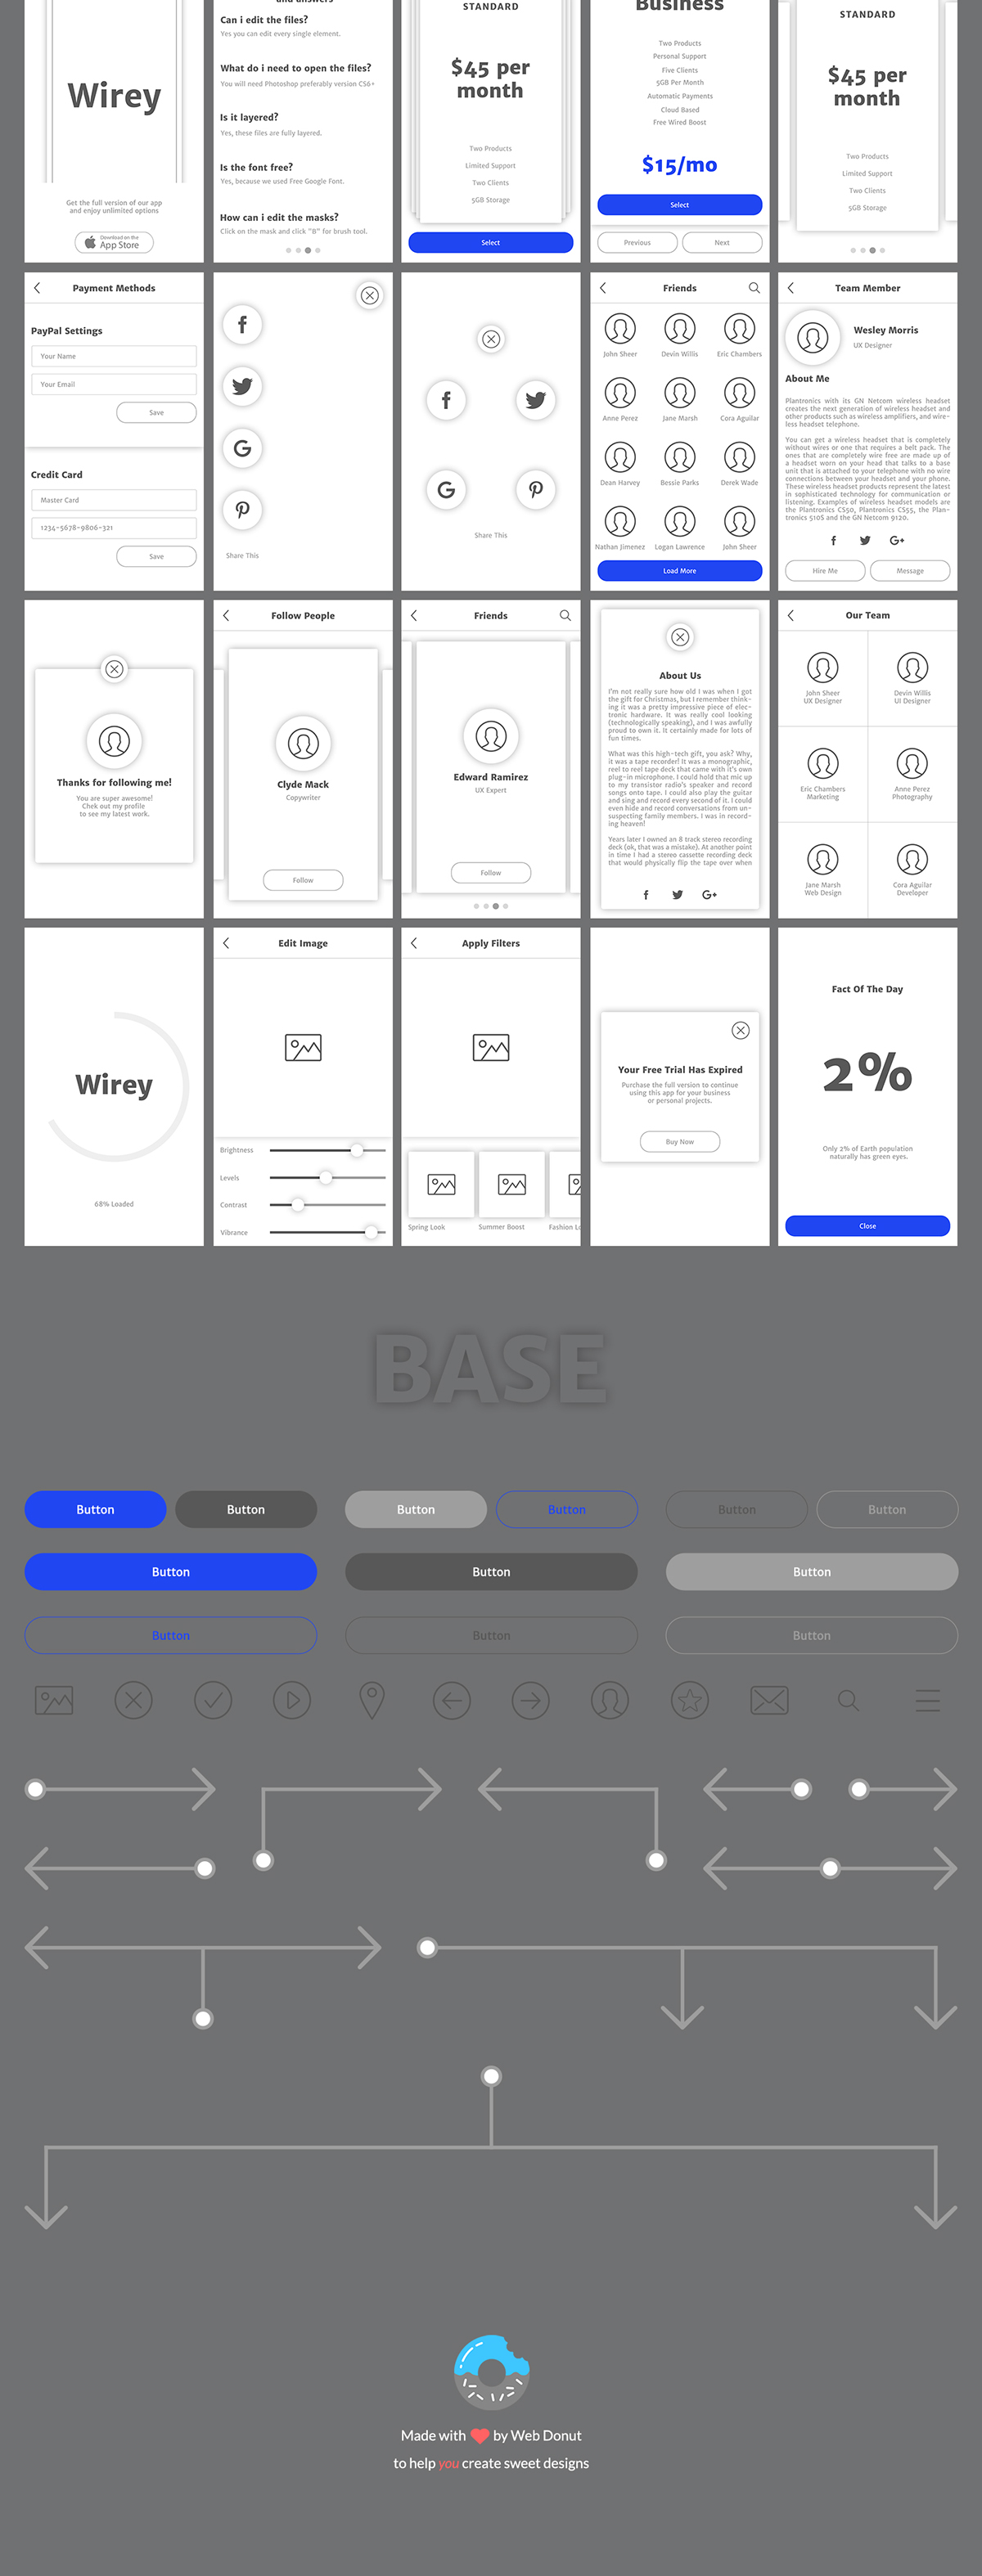 Wirey Mobile Wireframe Kit on Behance Buy Wirey Mobile Wireframe Kit from